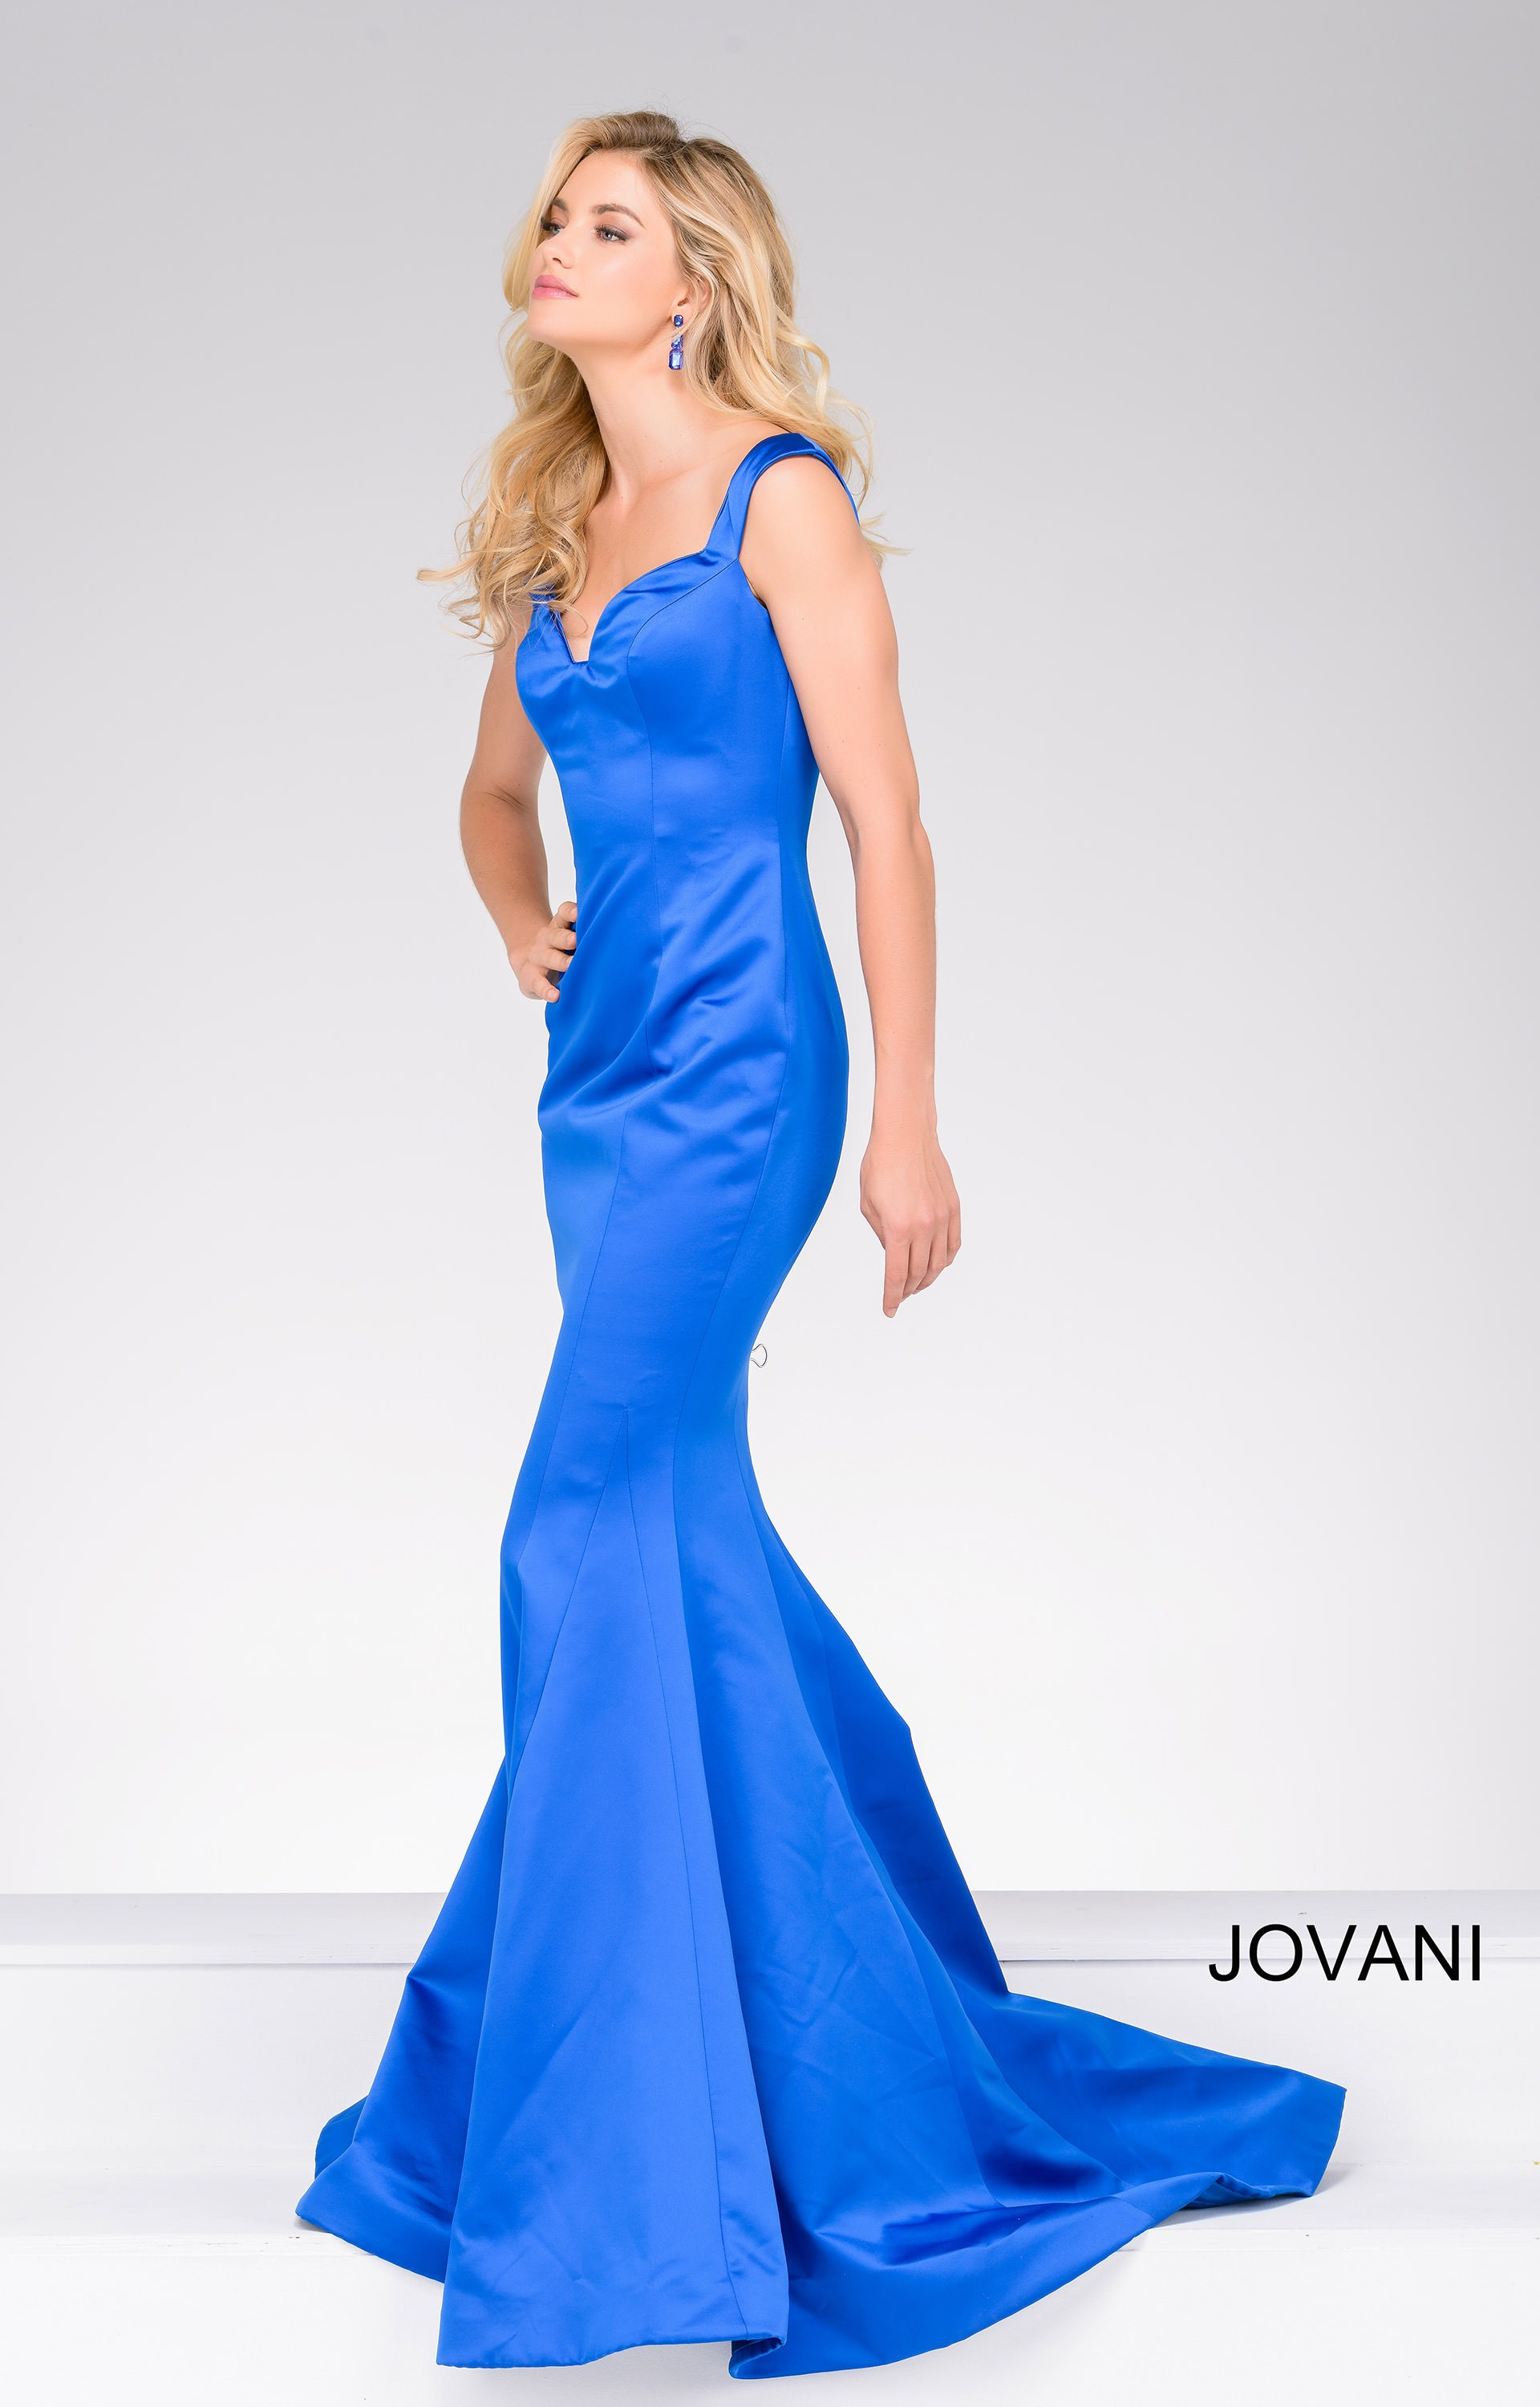 Jovani 40720 Satin Sleek Fit And Flare Mermaid Dress